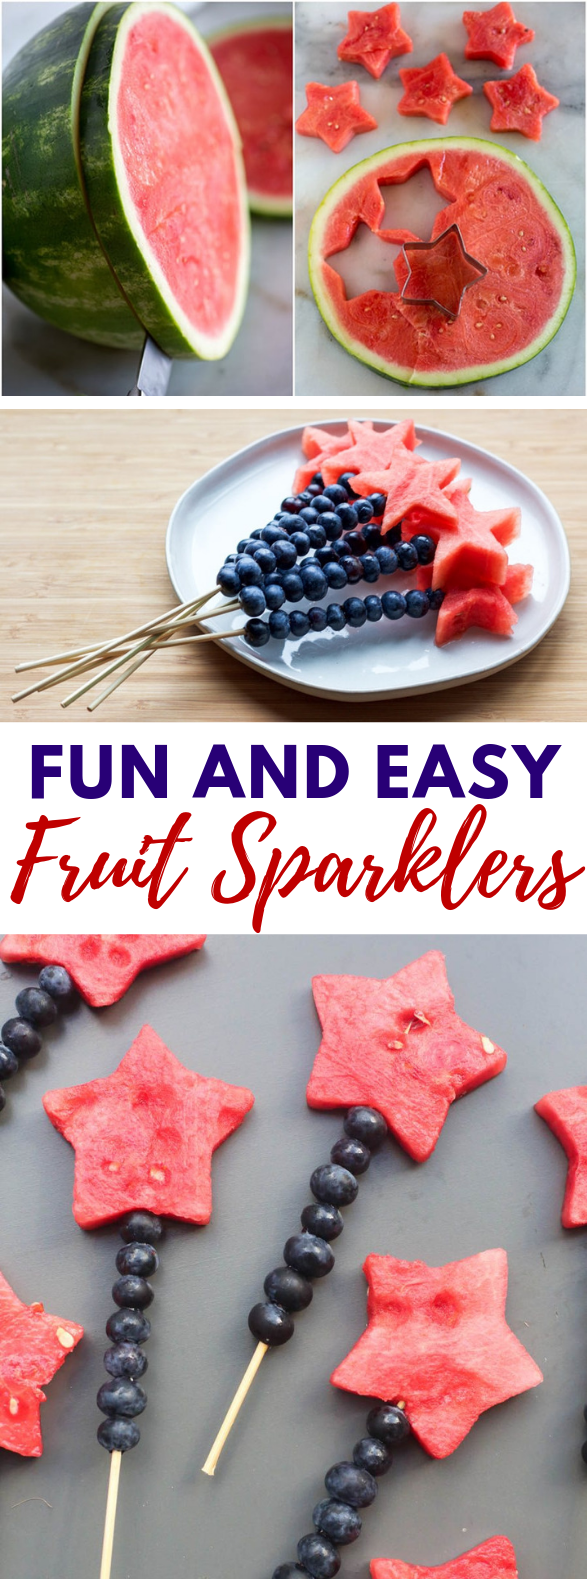 FRUIT SPARKLERS #holidayparty #summer